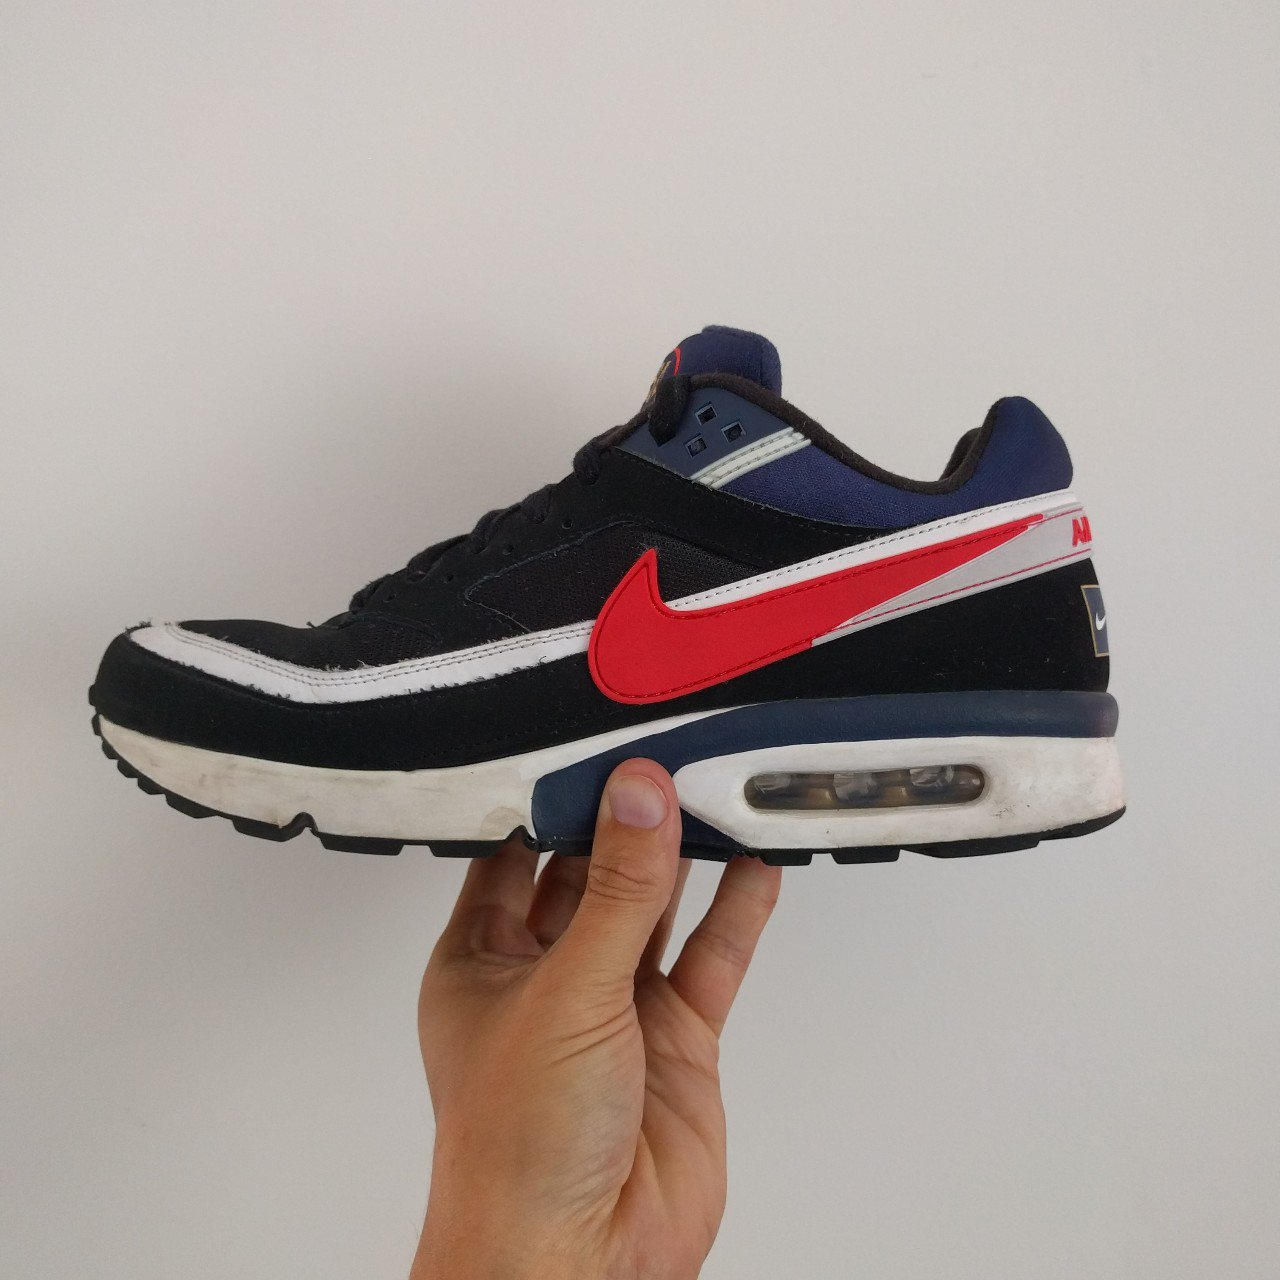 separation shoes 3caec 45ffe 💯 PRICE DROP was £80 💯 - Nike Air Max Olympic       UK 10 - Depop